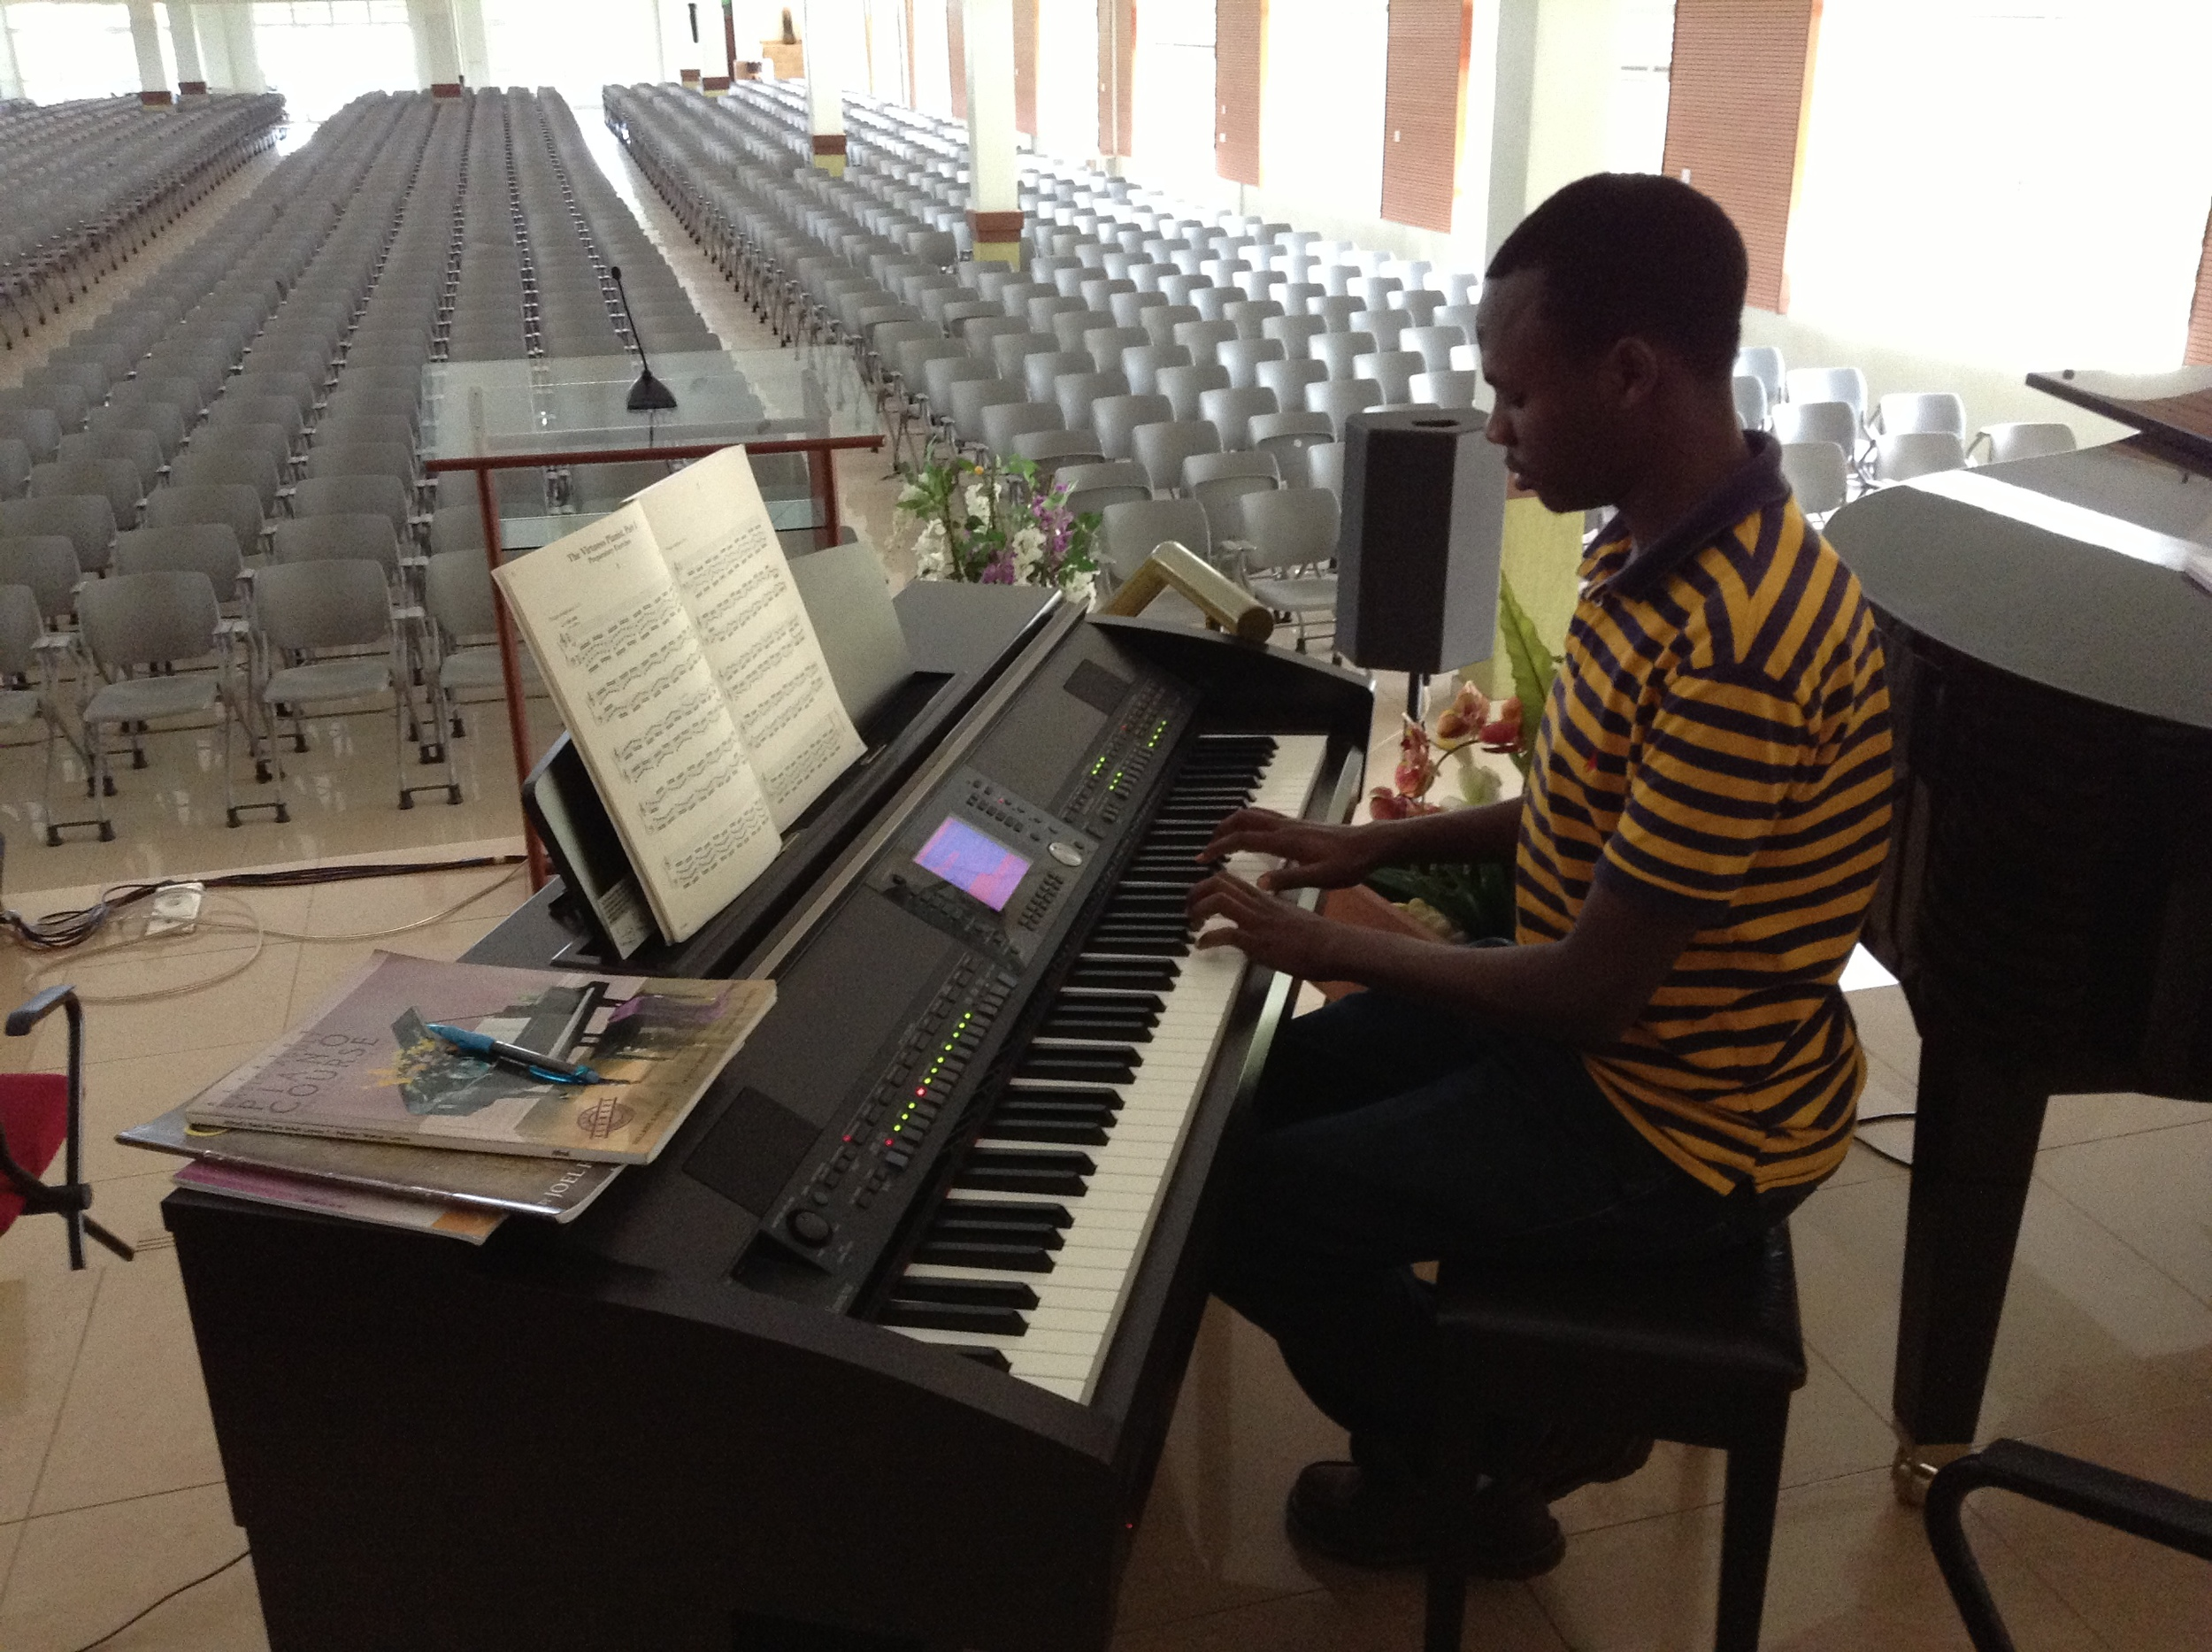 Eric completely surprised me when I met him. He has taught himself over the years to read music and is very good at playing by ear. So far, Eric is the only Rwandan I've met who has a good understanding of written notation. He is the most advanced student I get to teach and now regularly plays at the University for Church service. Here we are going over some virtuosic piano techniques.